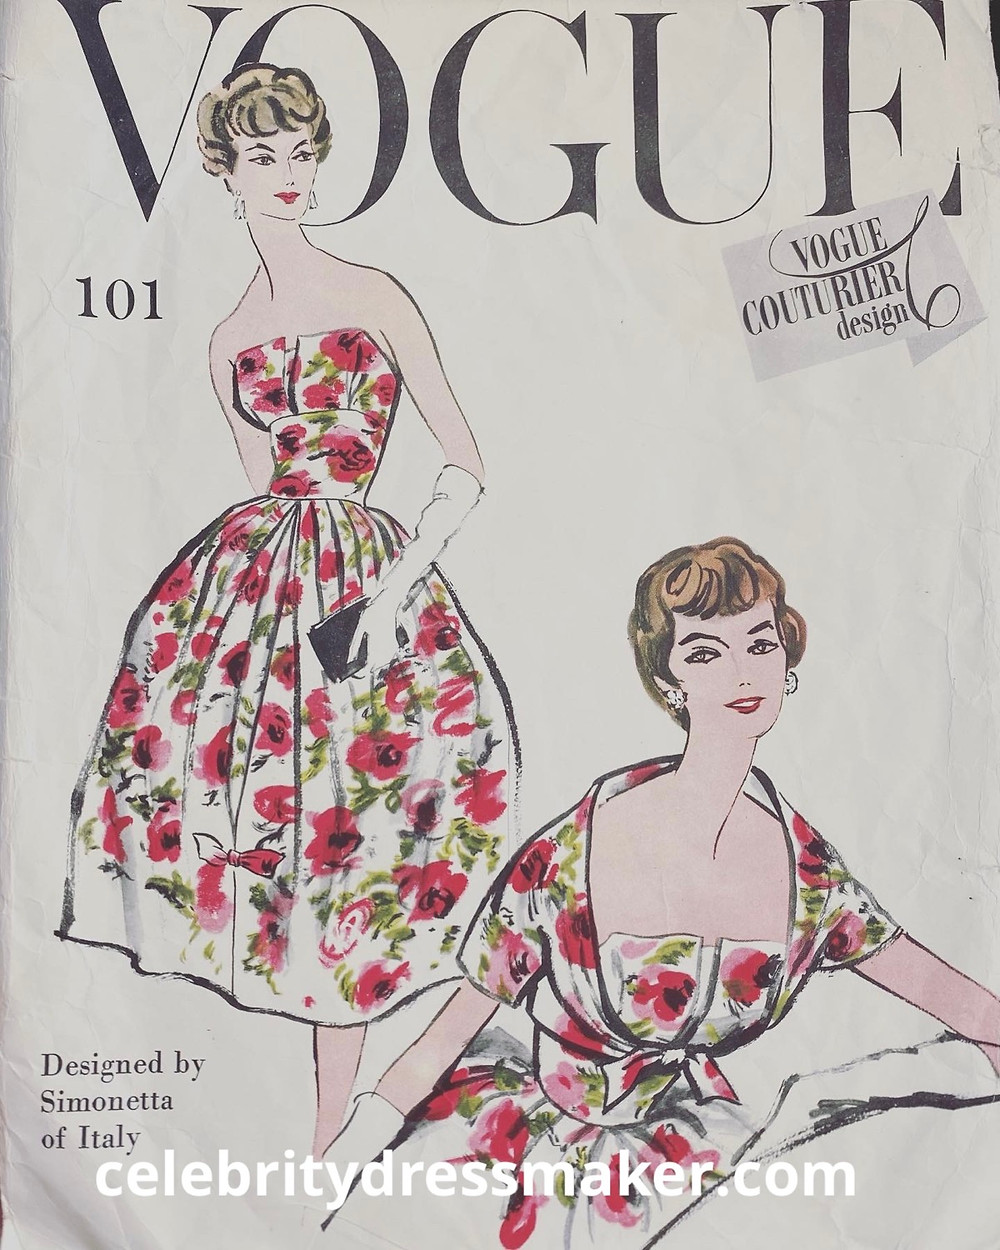 Vogue Couturier Design 101; ©1958. Simonetta of Italy - One piece dress and bolero. All around pleated skirt has a deep inverted pleat at centre front, released above the hem. Released upper bodice front section. Optional shoulder straps. Brief bolero fastens with tied dog ears. Short kimono sleeves.